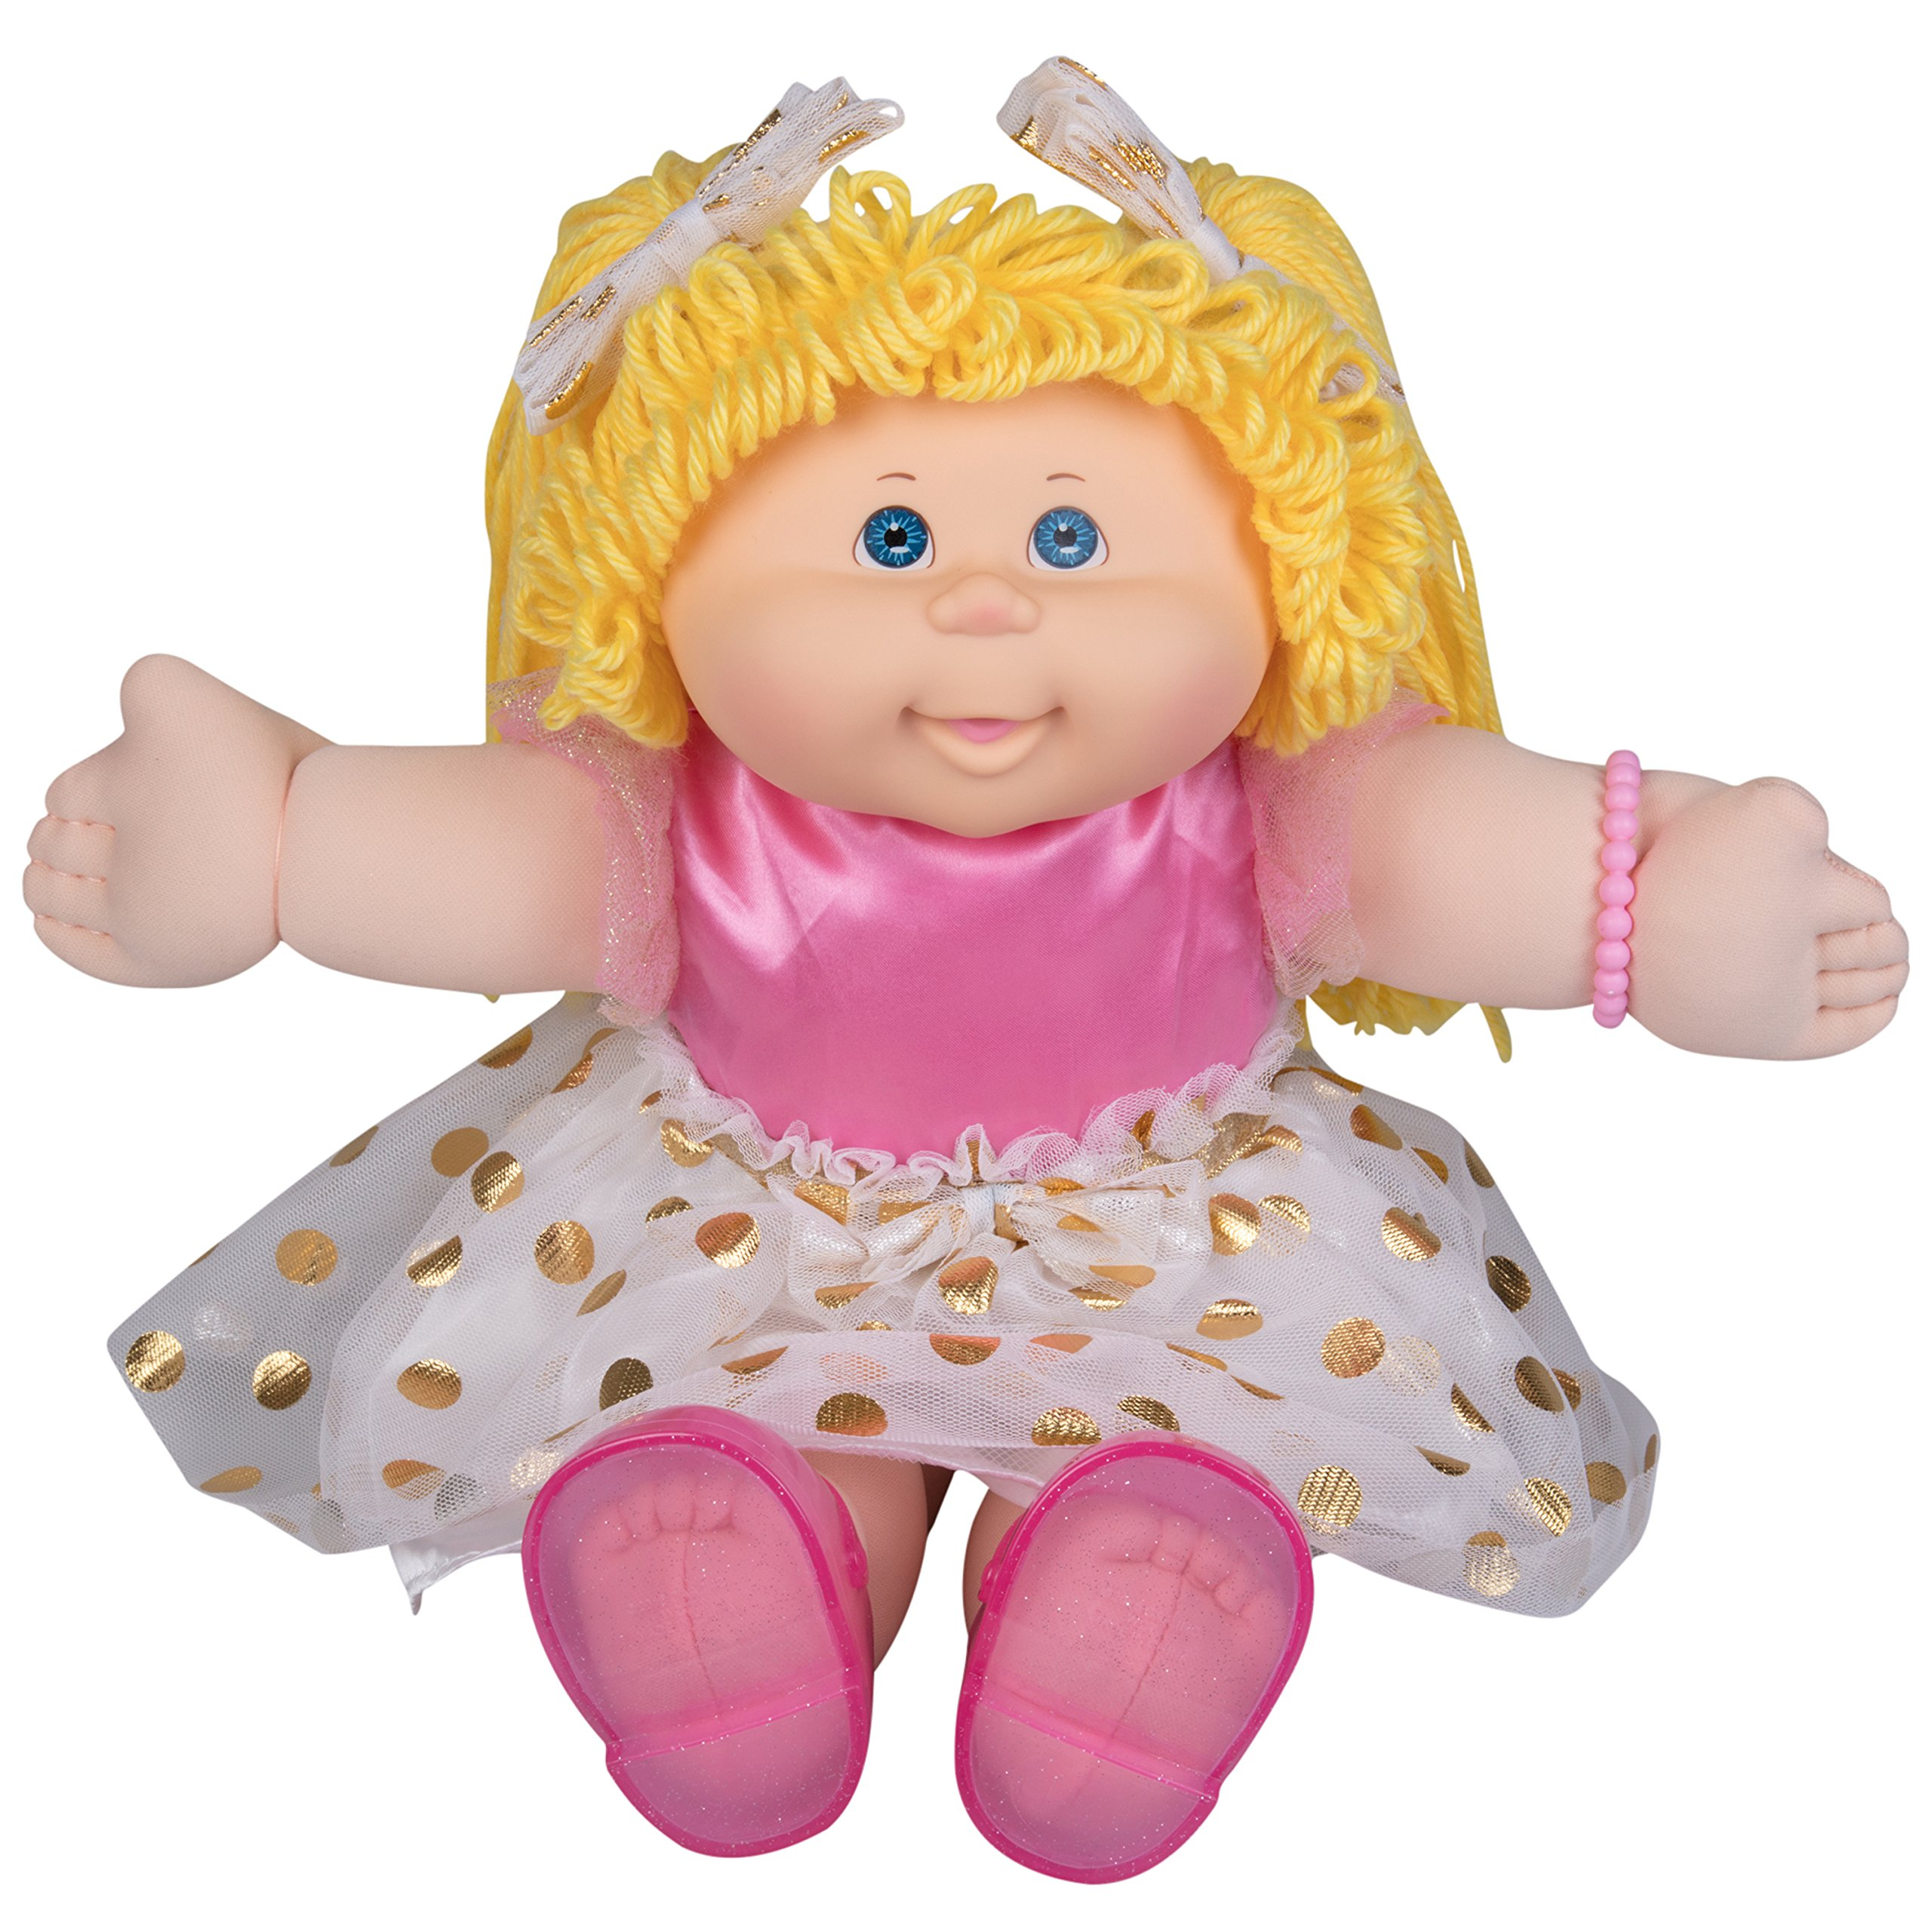 Cabbage Patch Kids Vintage Retro Style Yarn Hair Doll - Original Blonde  HairBlue Eyes, 16 - Amazon Exclusive - Easy to Open Packaging: Buy Online  at Best Price in UAE - Amazon.ae